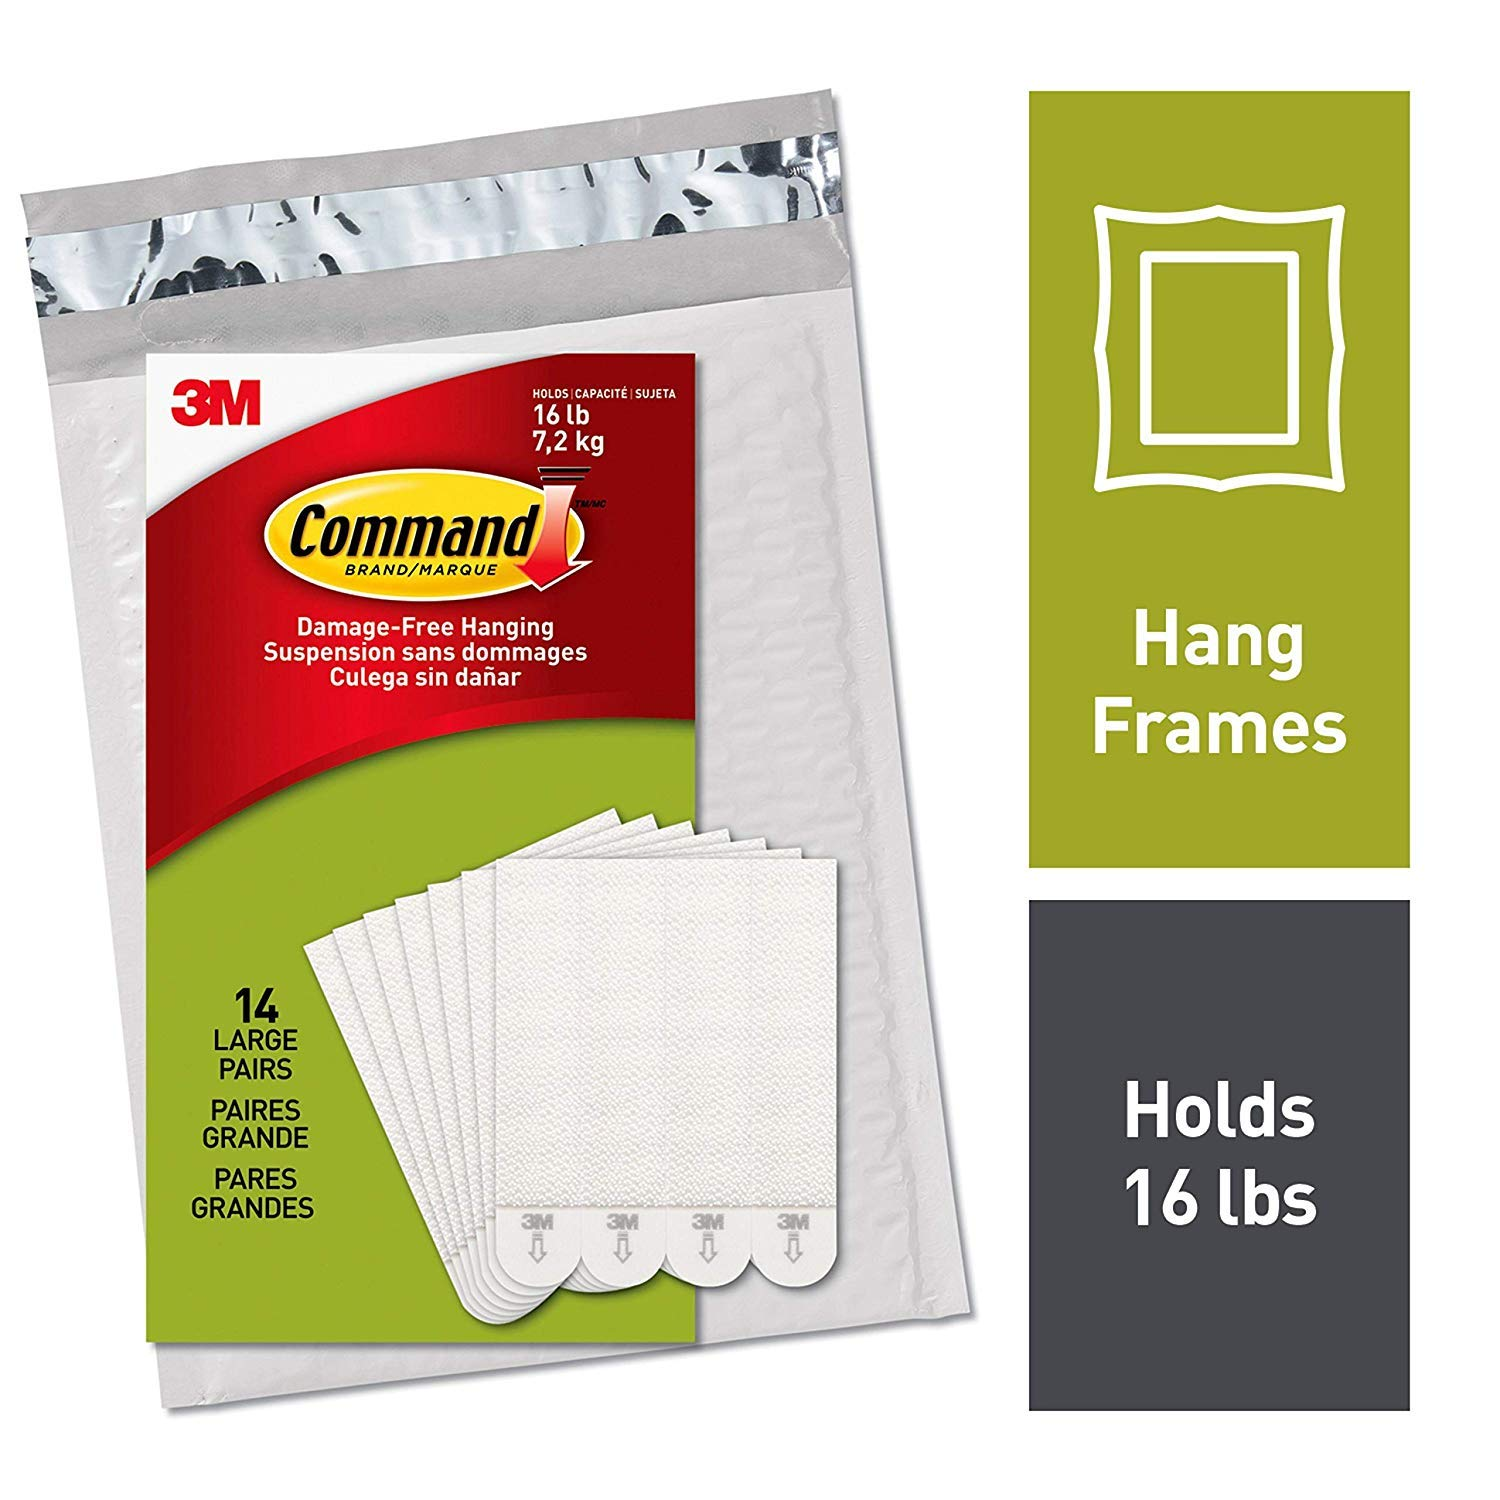 Command Large Picture Hanging Strips, 14 Pairs (36 Strips), Decorate Damage-Free, Holds 16 lbs, Ships in Own Container (PH206-14NA) (2 Sets(14 Pairs))